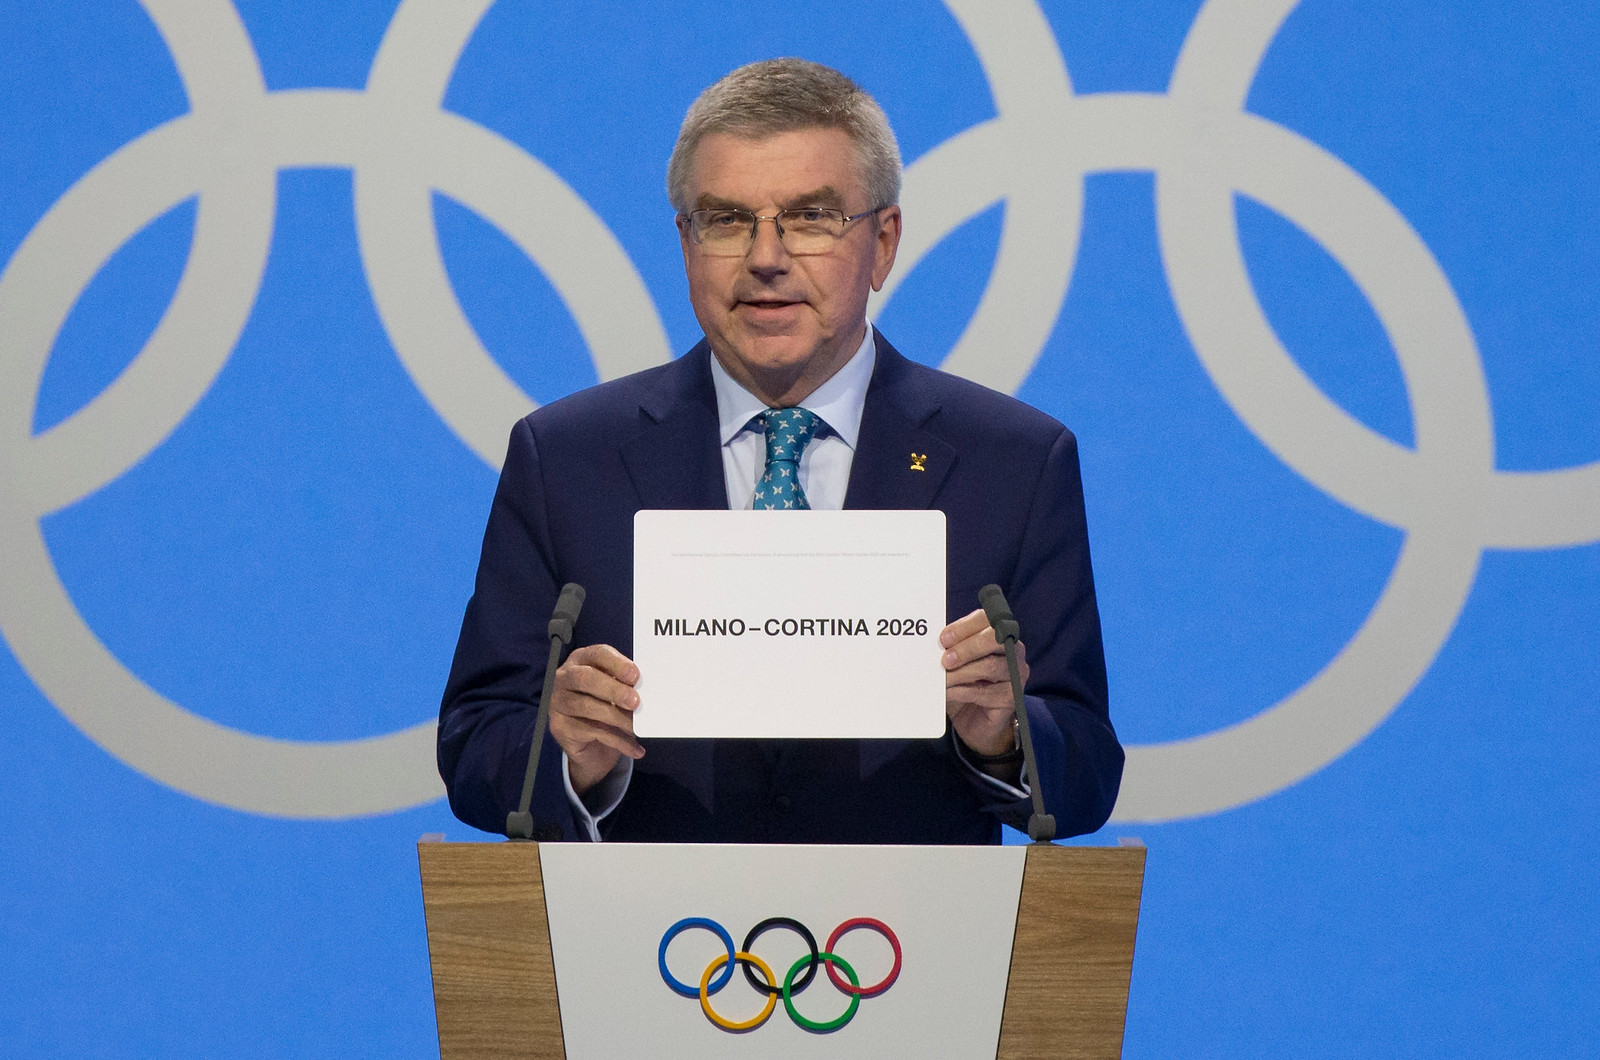 IOC President Thomas Bach announces Delegates from Milan - Cortina win the 2026 Winter Olympics during the first day of the 134th IOC Session at Swisstech